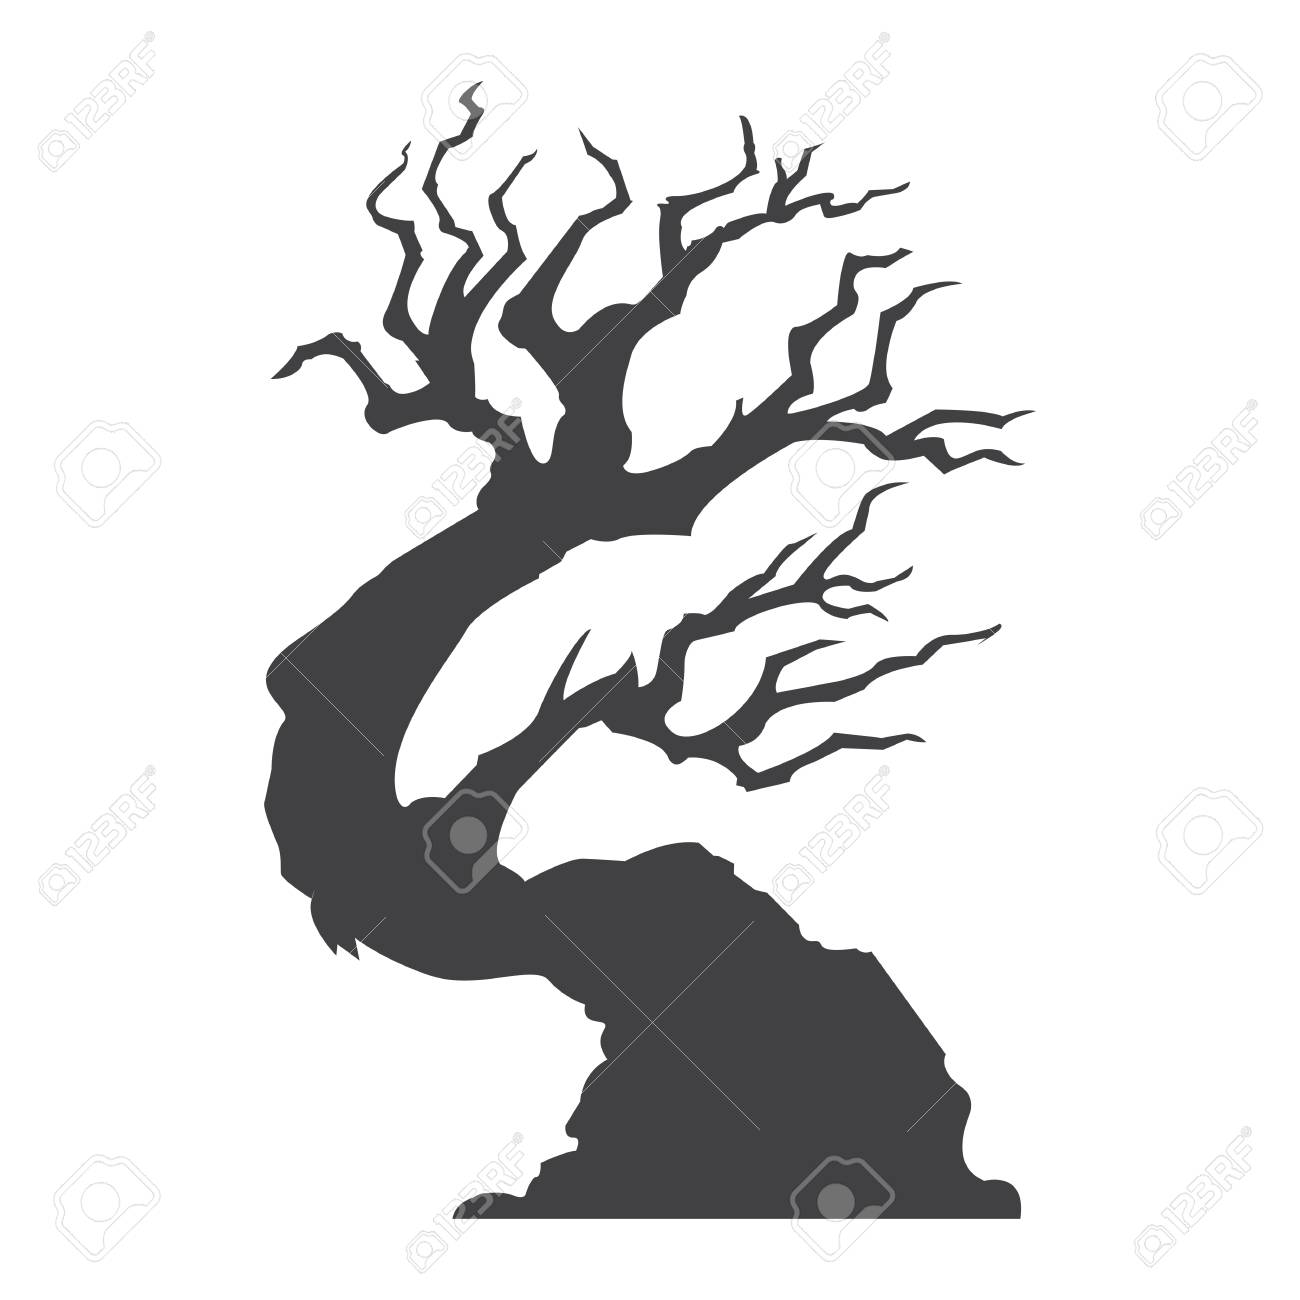 Halloween Tree Glyph Icon Halloween And Scary Tree Silhouette Royalty Free Cliparts Vectors And Stock Illustration Image 87677865